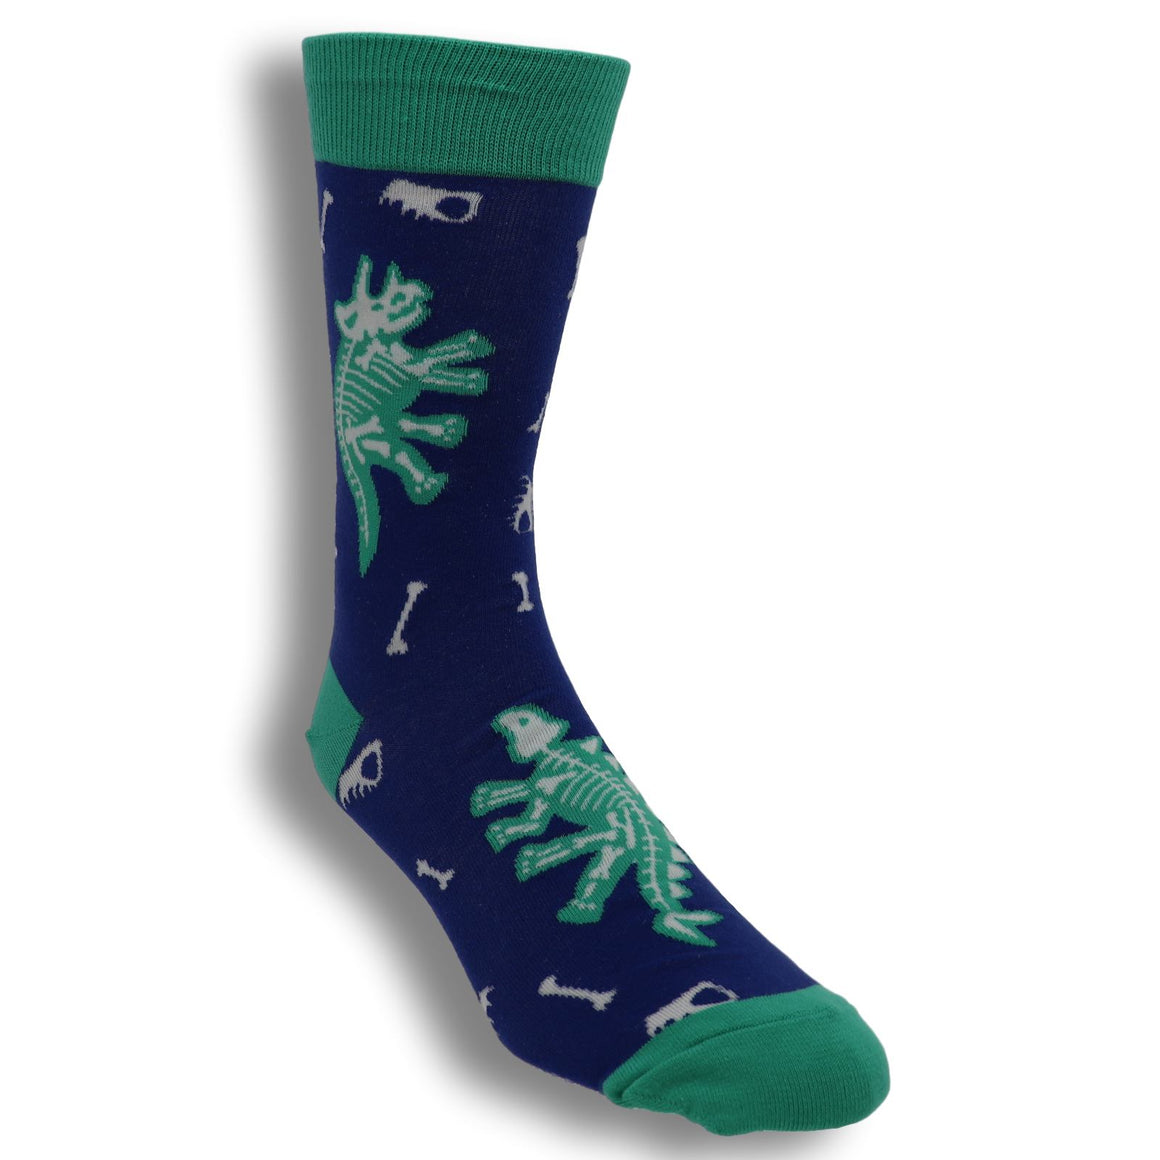 Arch-eolgoy Glow in the Dark Dinosaur Socks by Sock it to Me - The Sock Spot